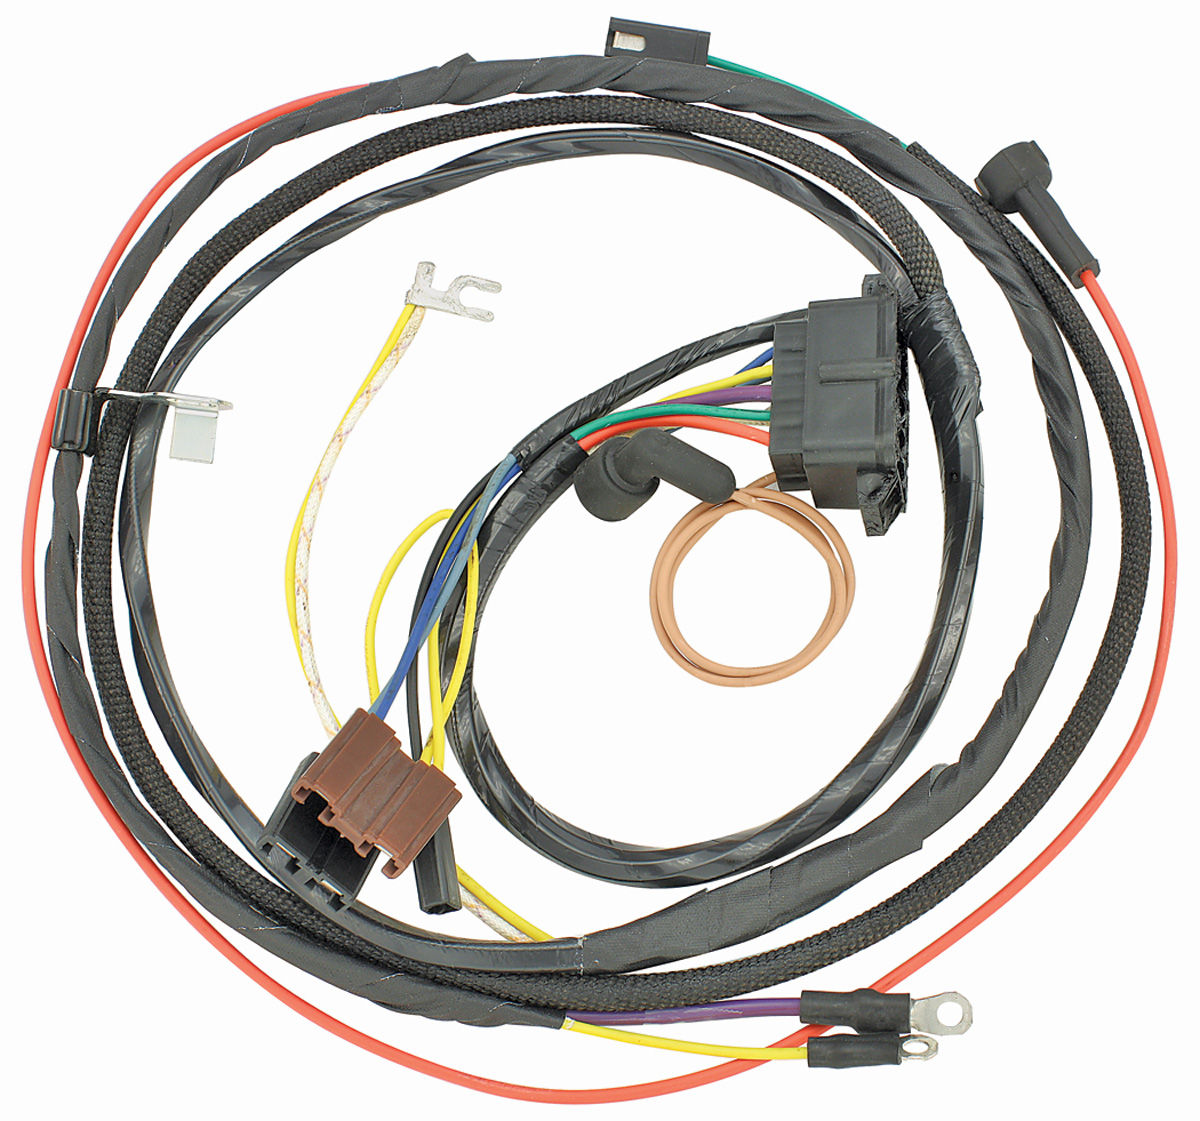 hight resolution of 1972 chevelle engine wiring harness trusted wiring diagram 1966 chevelle distributor wiring 1966 chevelle ss wiring diagram